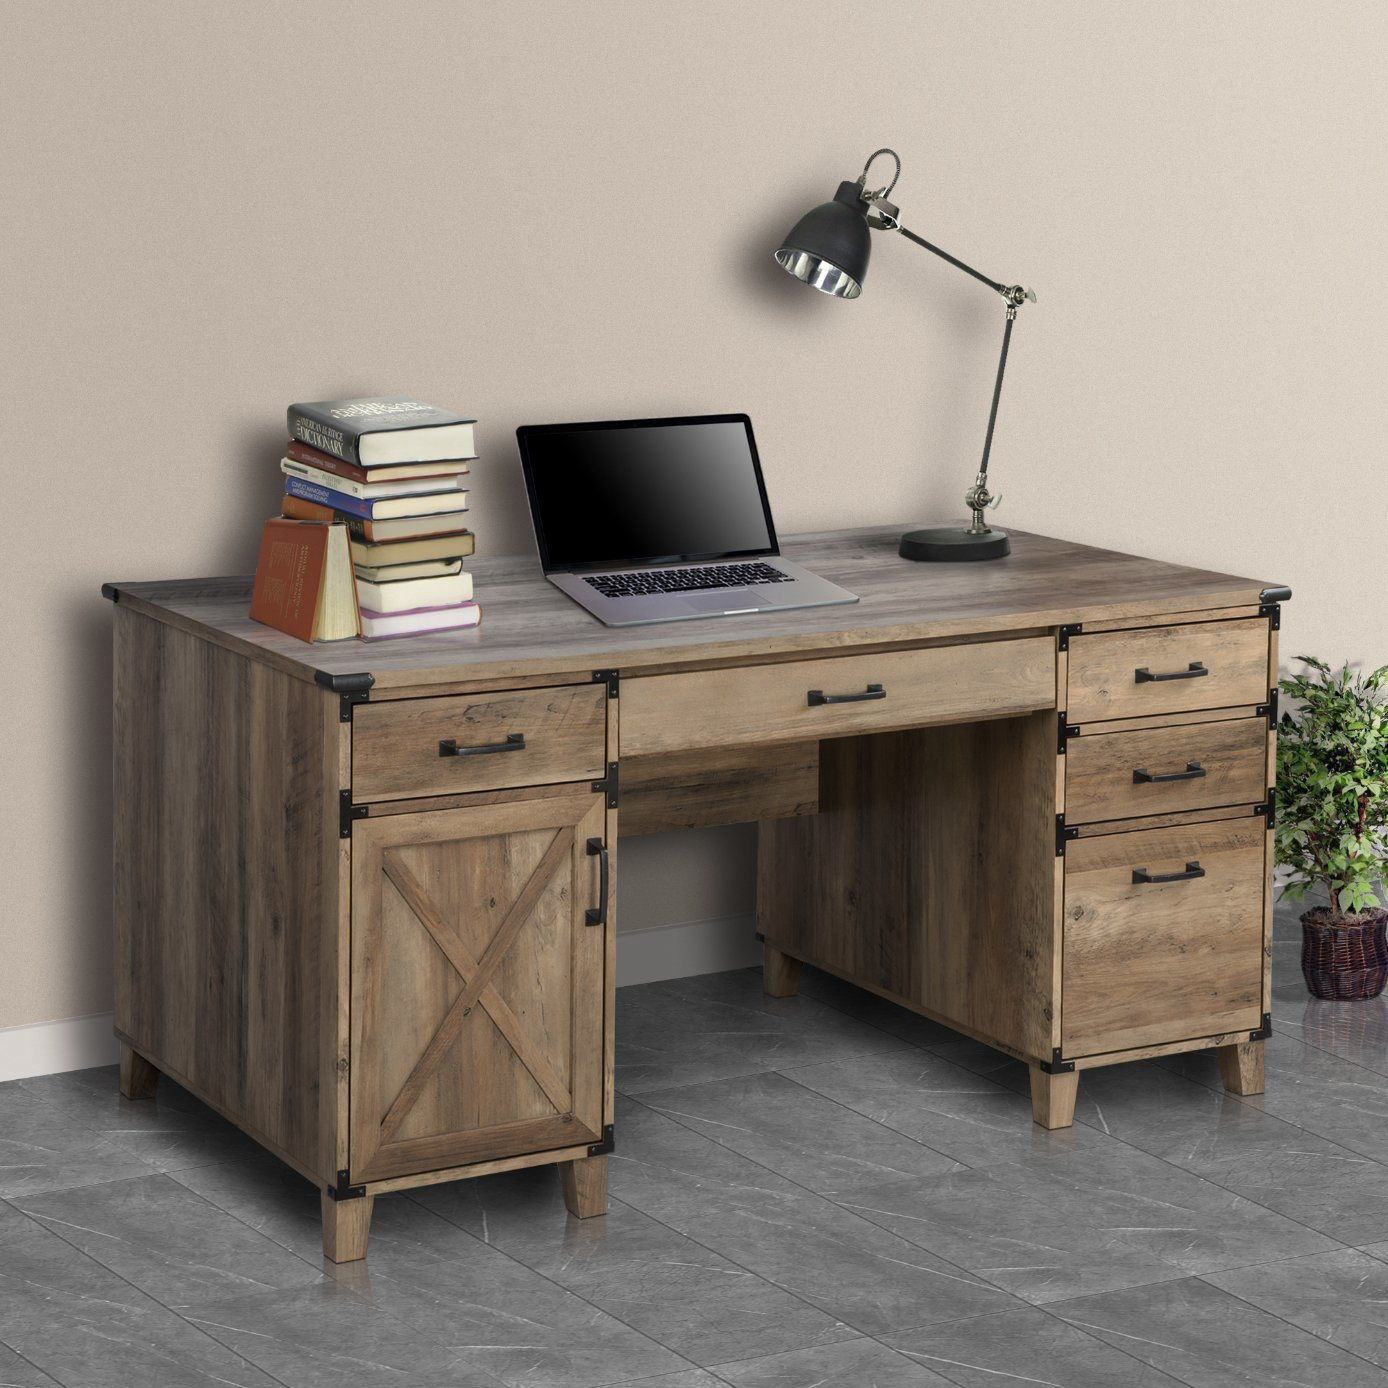 China Home Office Furniture Living Room Wooden Rustic Oak Color Luxury Fashion Writing Desk Executive Table Computer Desk With Cabinet Drawer China Pedestal Desk Office Furniture Computer Desk